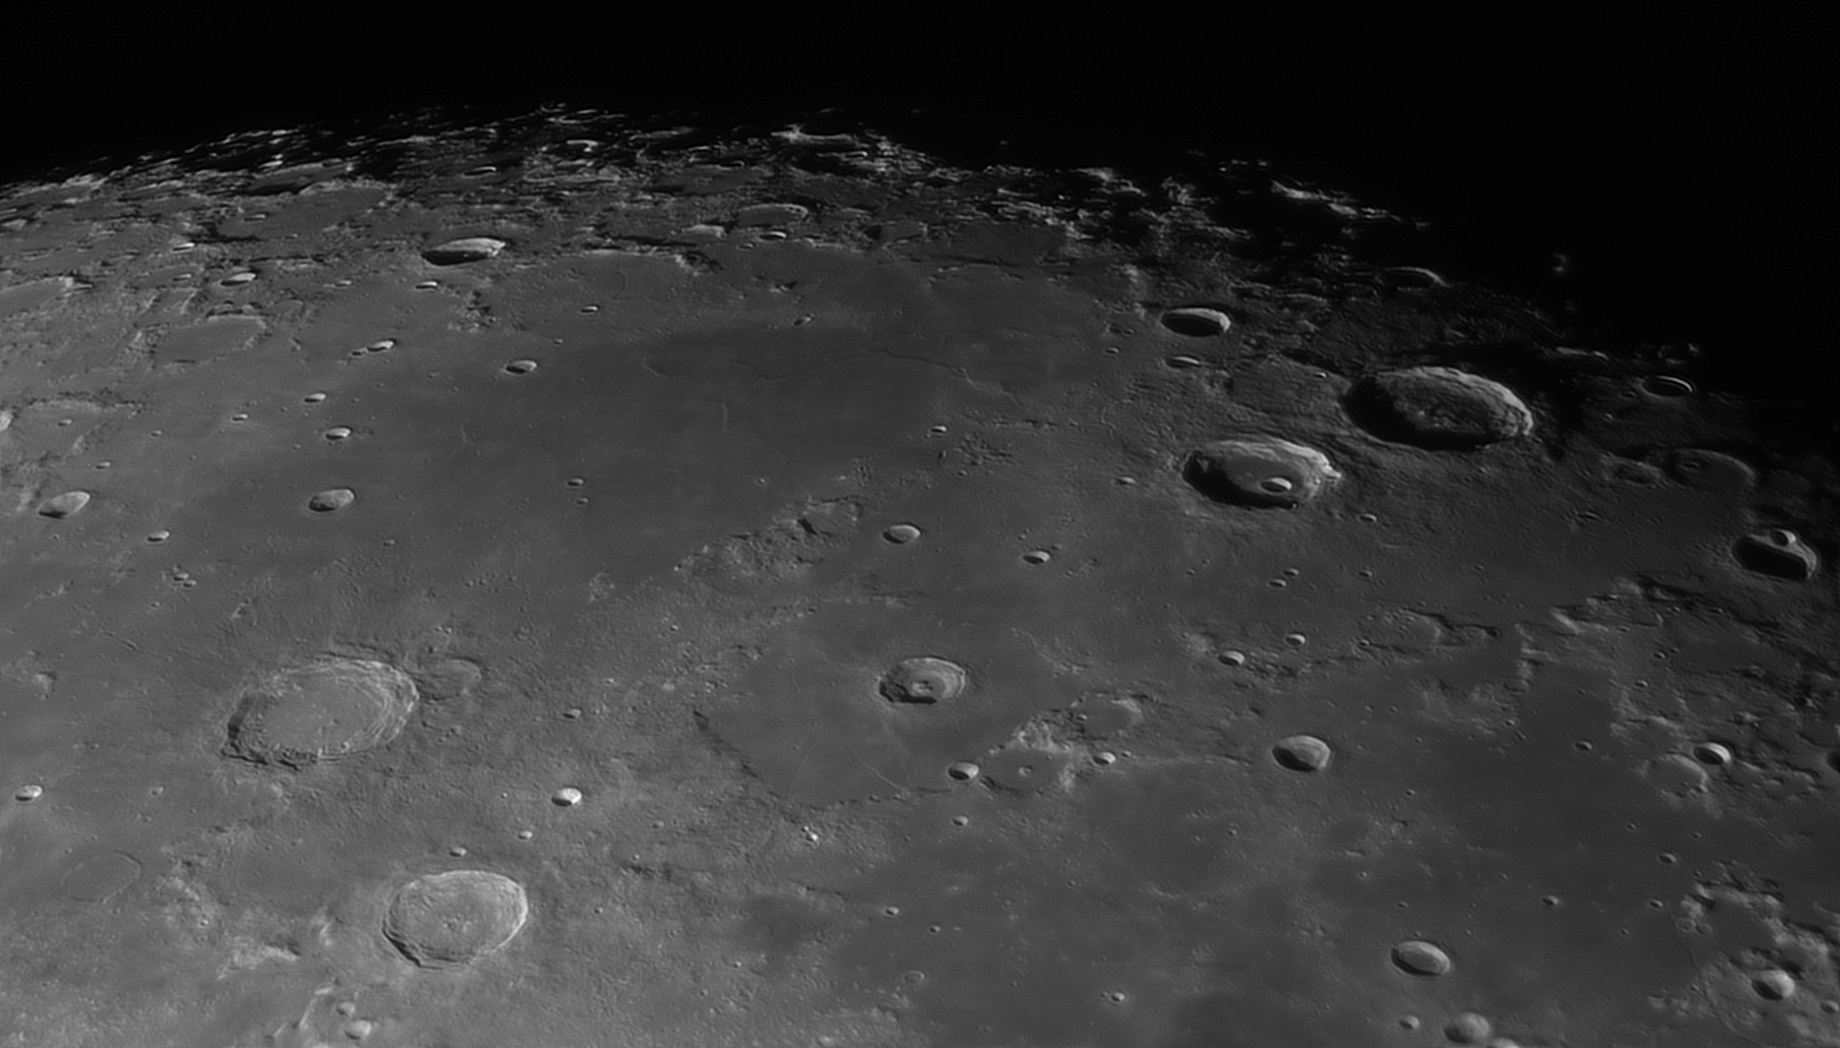 5e56c9911f4c4_Moon_055900_120220_ZWOASI290MM_IR_742nm_AS_P30_lapl4_ap1045_AI_Deconvolution_6.jpg.5dcea5c21abf3fba24868f39f230b6b0.jpg